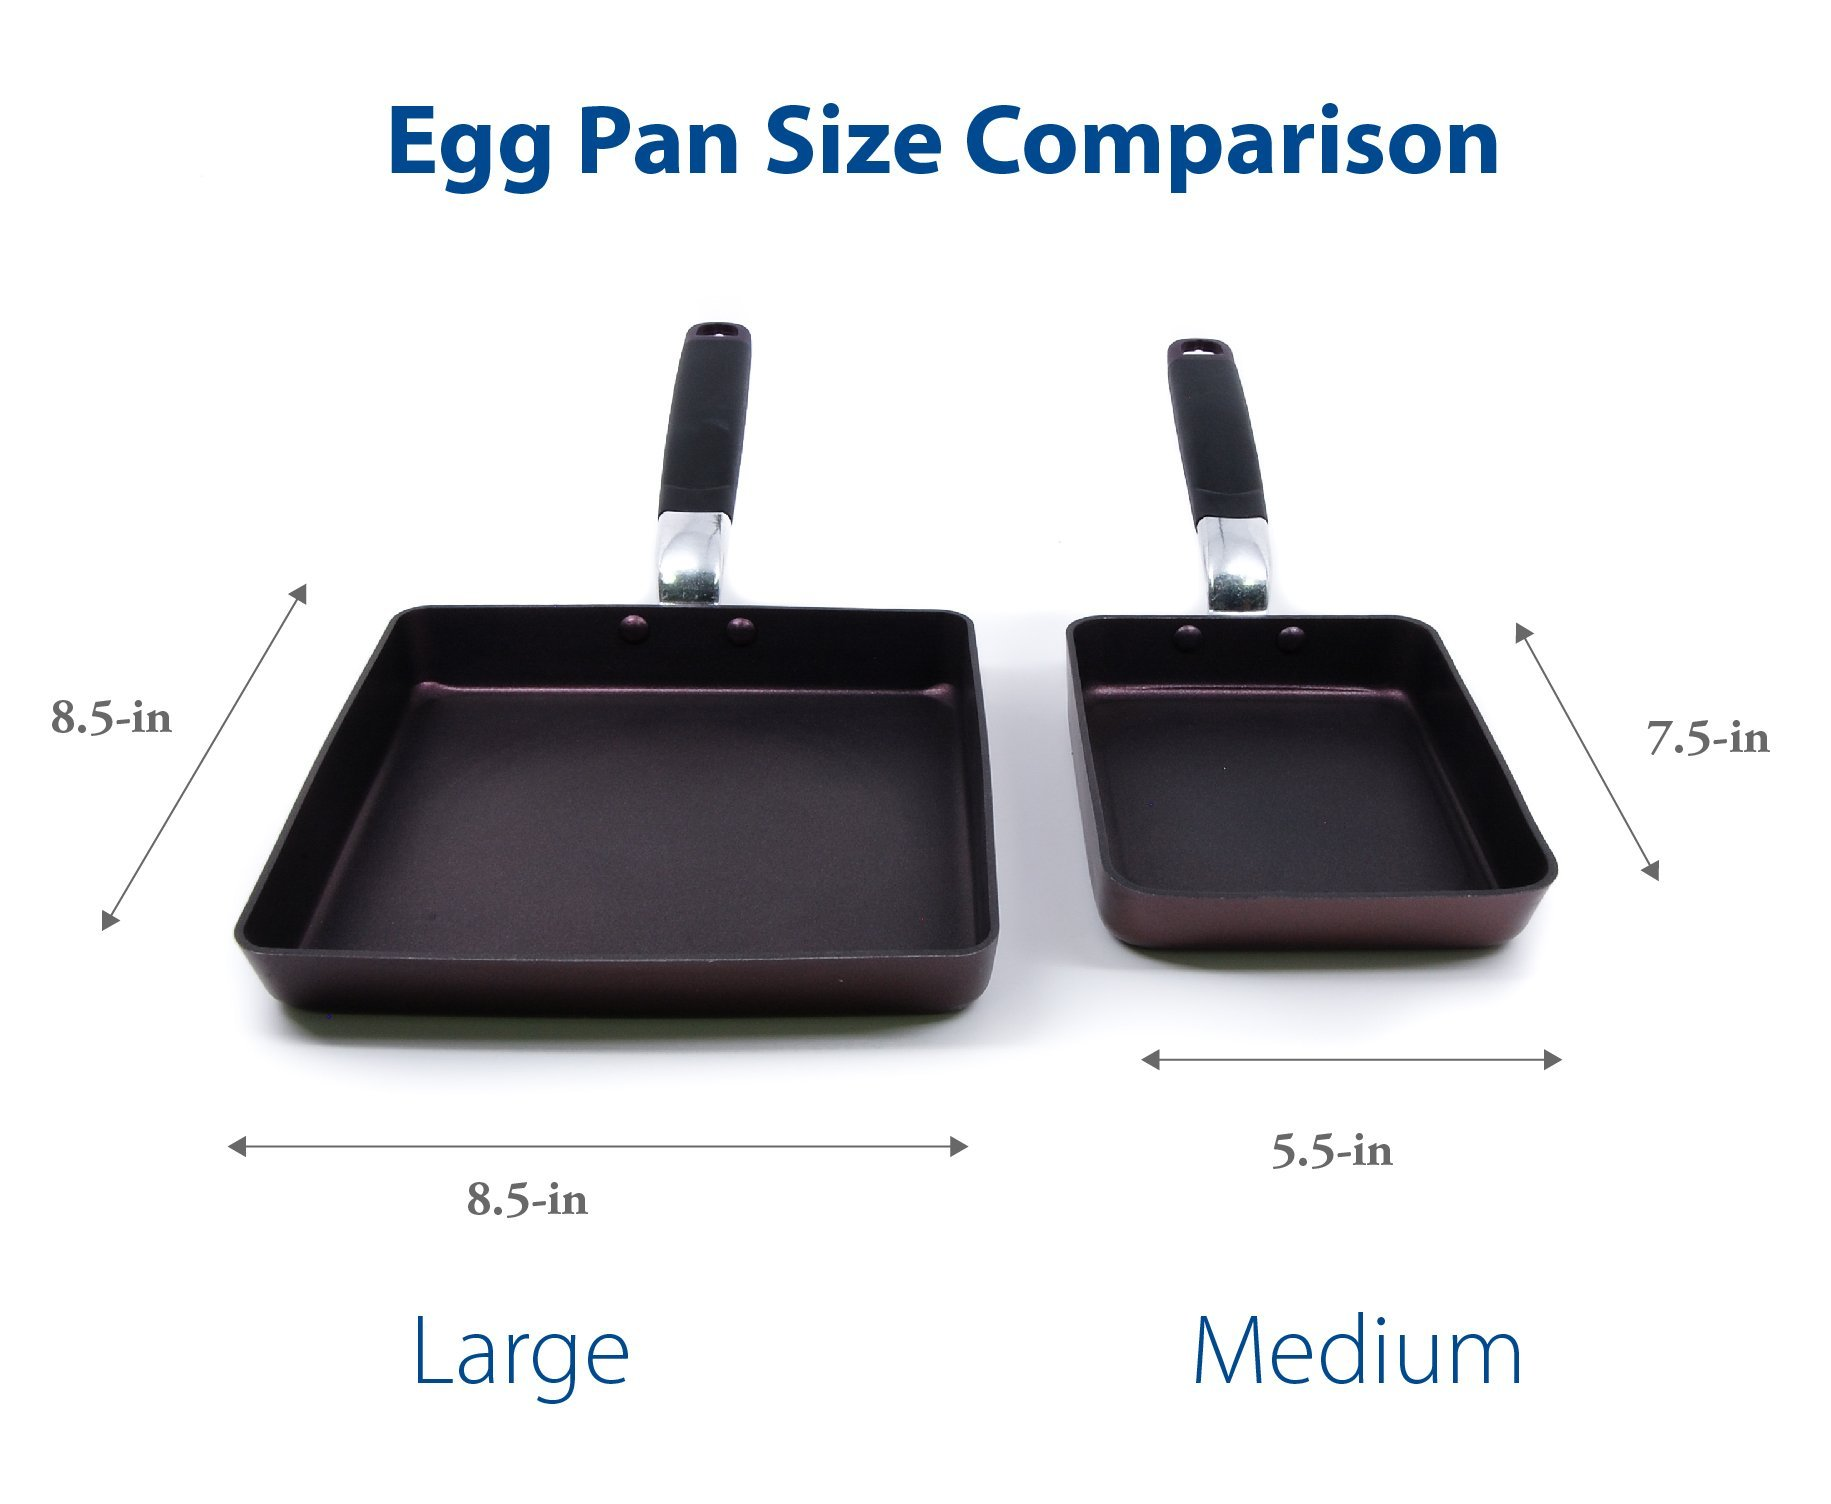 TeChef - Tamagoyaki Japanese Omelette Pan/Egg Pan, Coated with Dupont Teflon Select - Colour Collection/Non-stick Coating (PFOA Free) by TECHEF (Image #4)